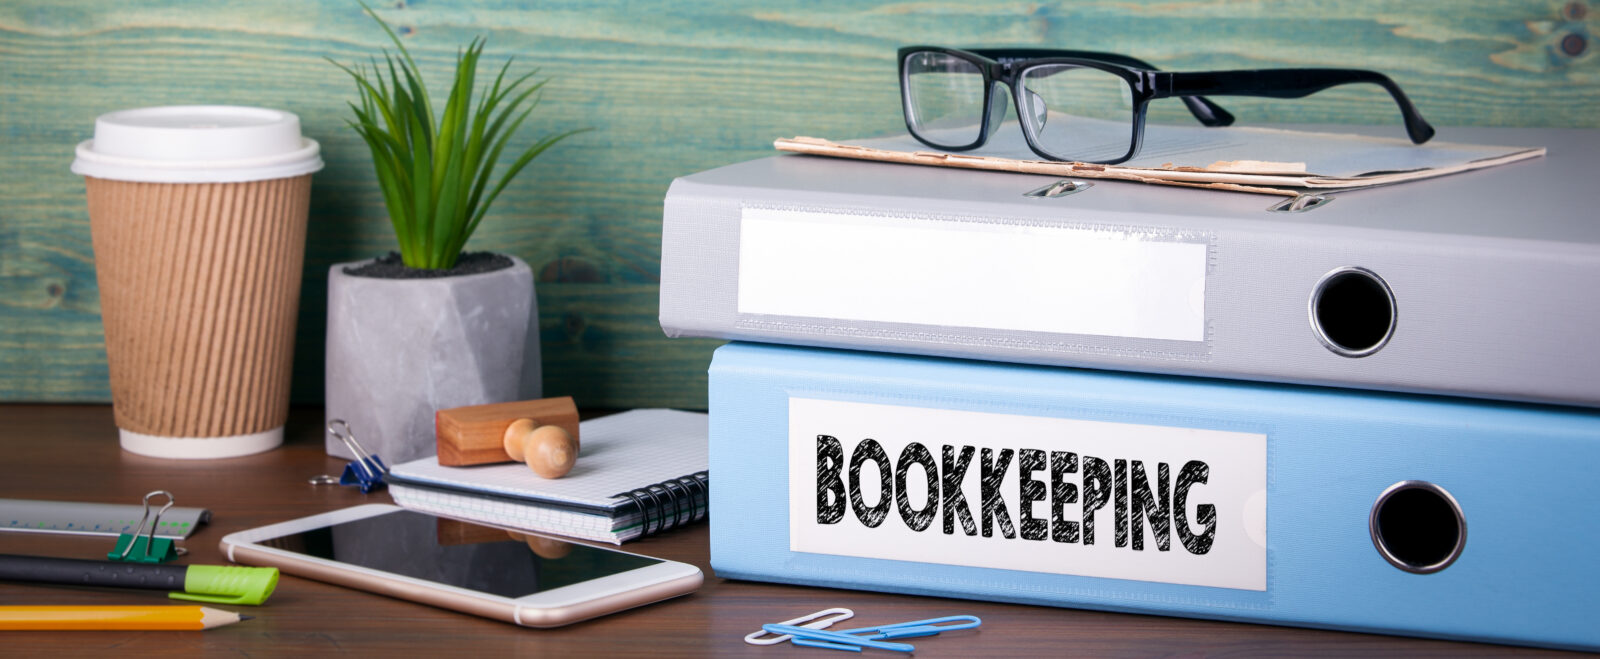 accounting/bookkeeping professional